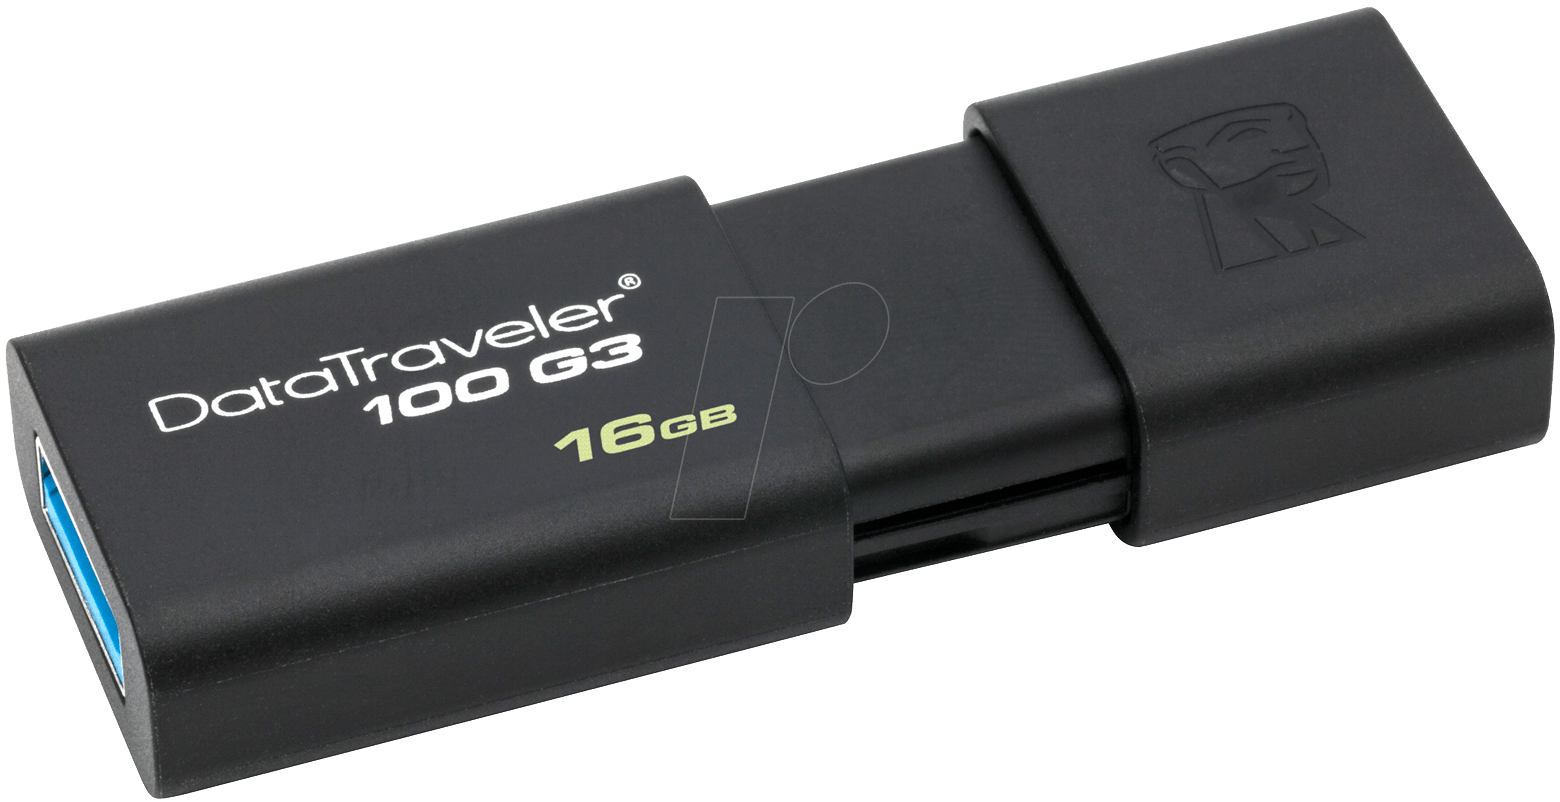 USB 3.0 Kingston DT100G3 16GB